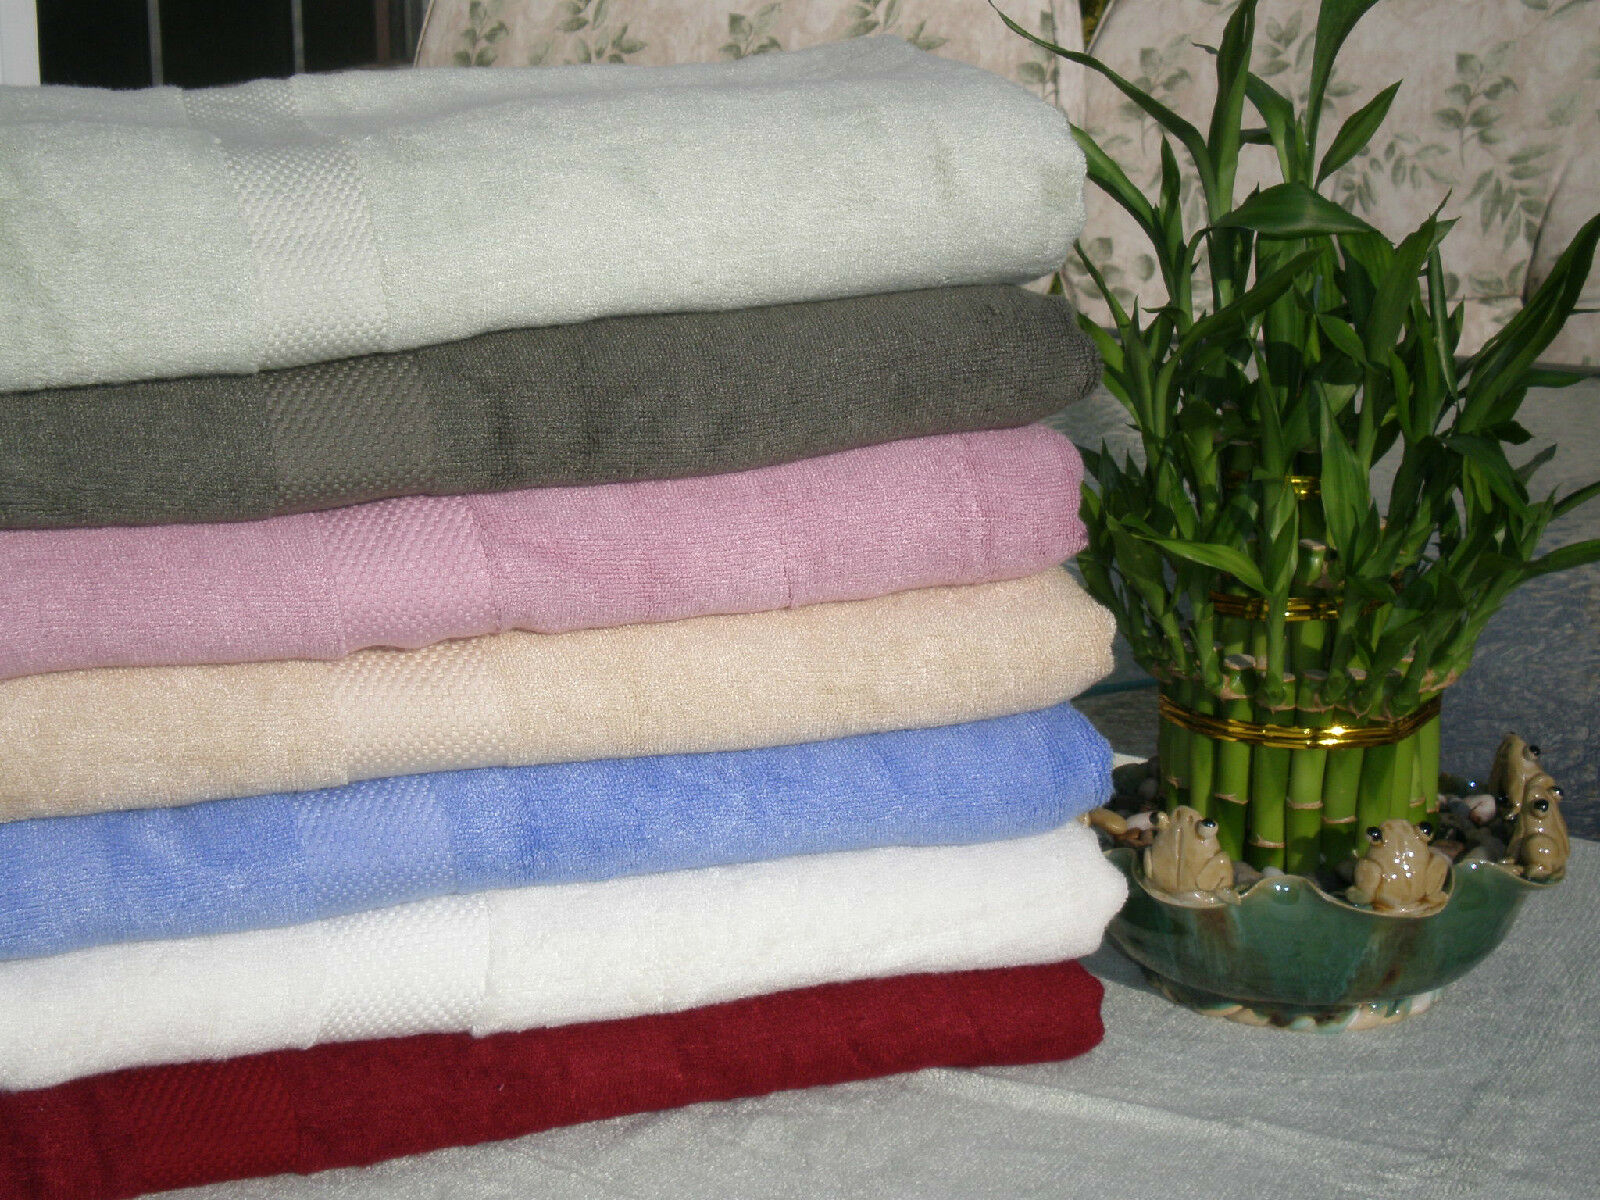 100% Bamboo Towels 6 pcs, 2 bath towels, 2 2 2 bath towels, 2 washcloths eb58b0